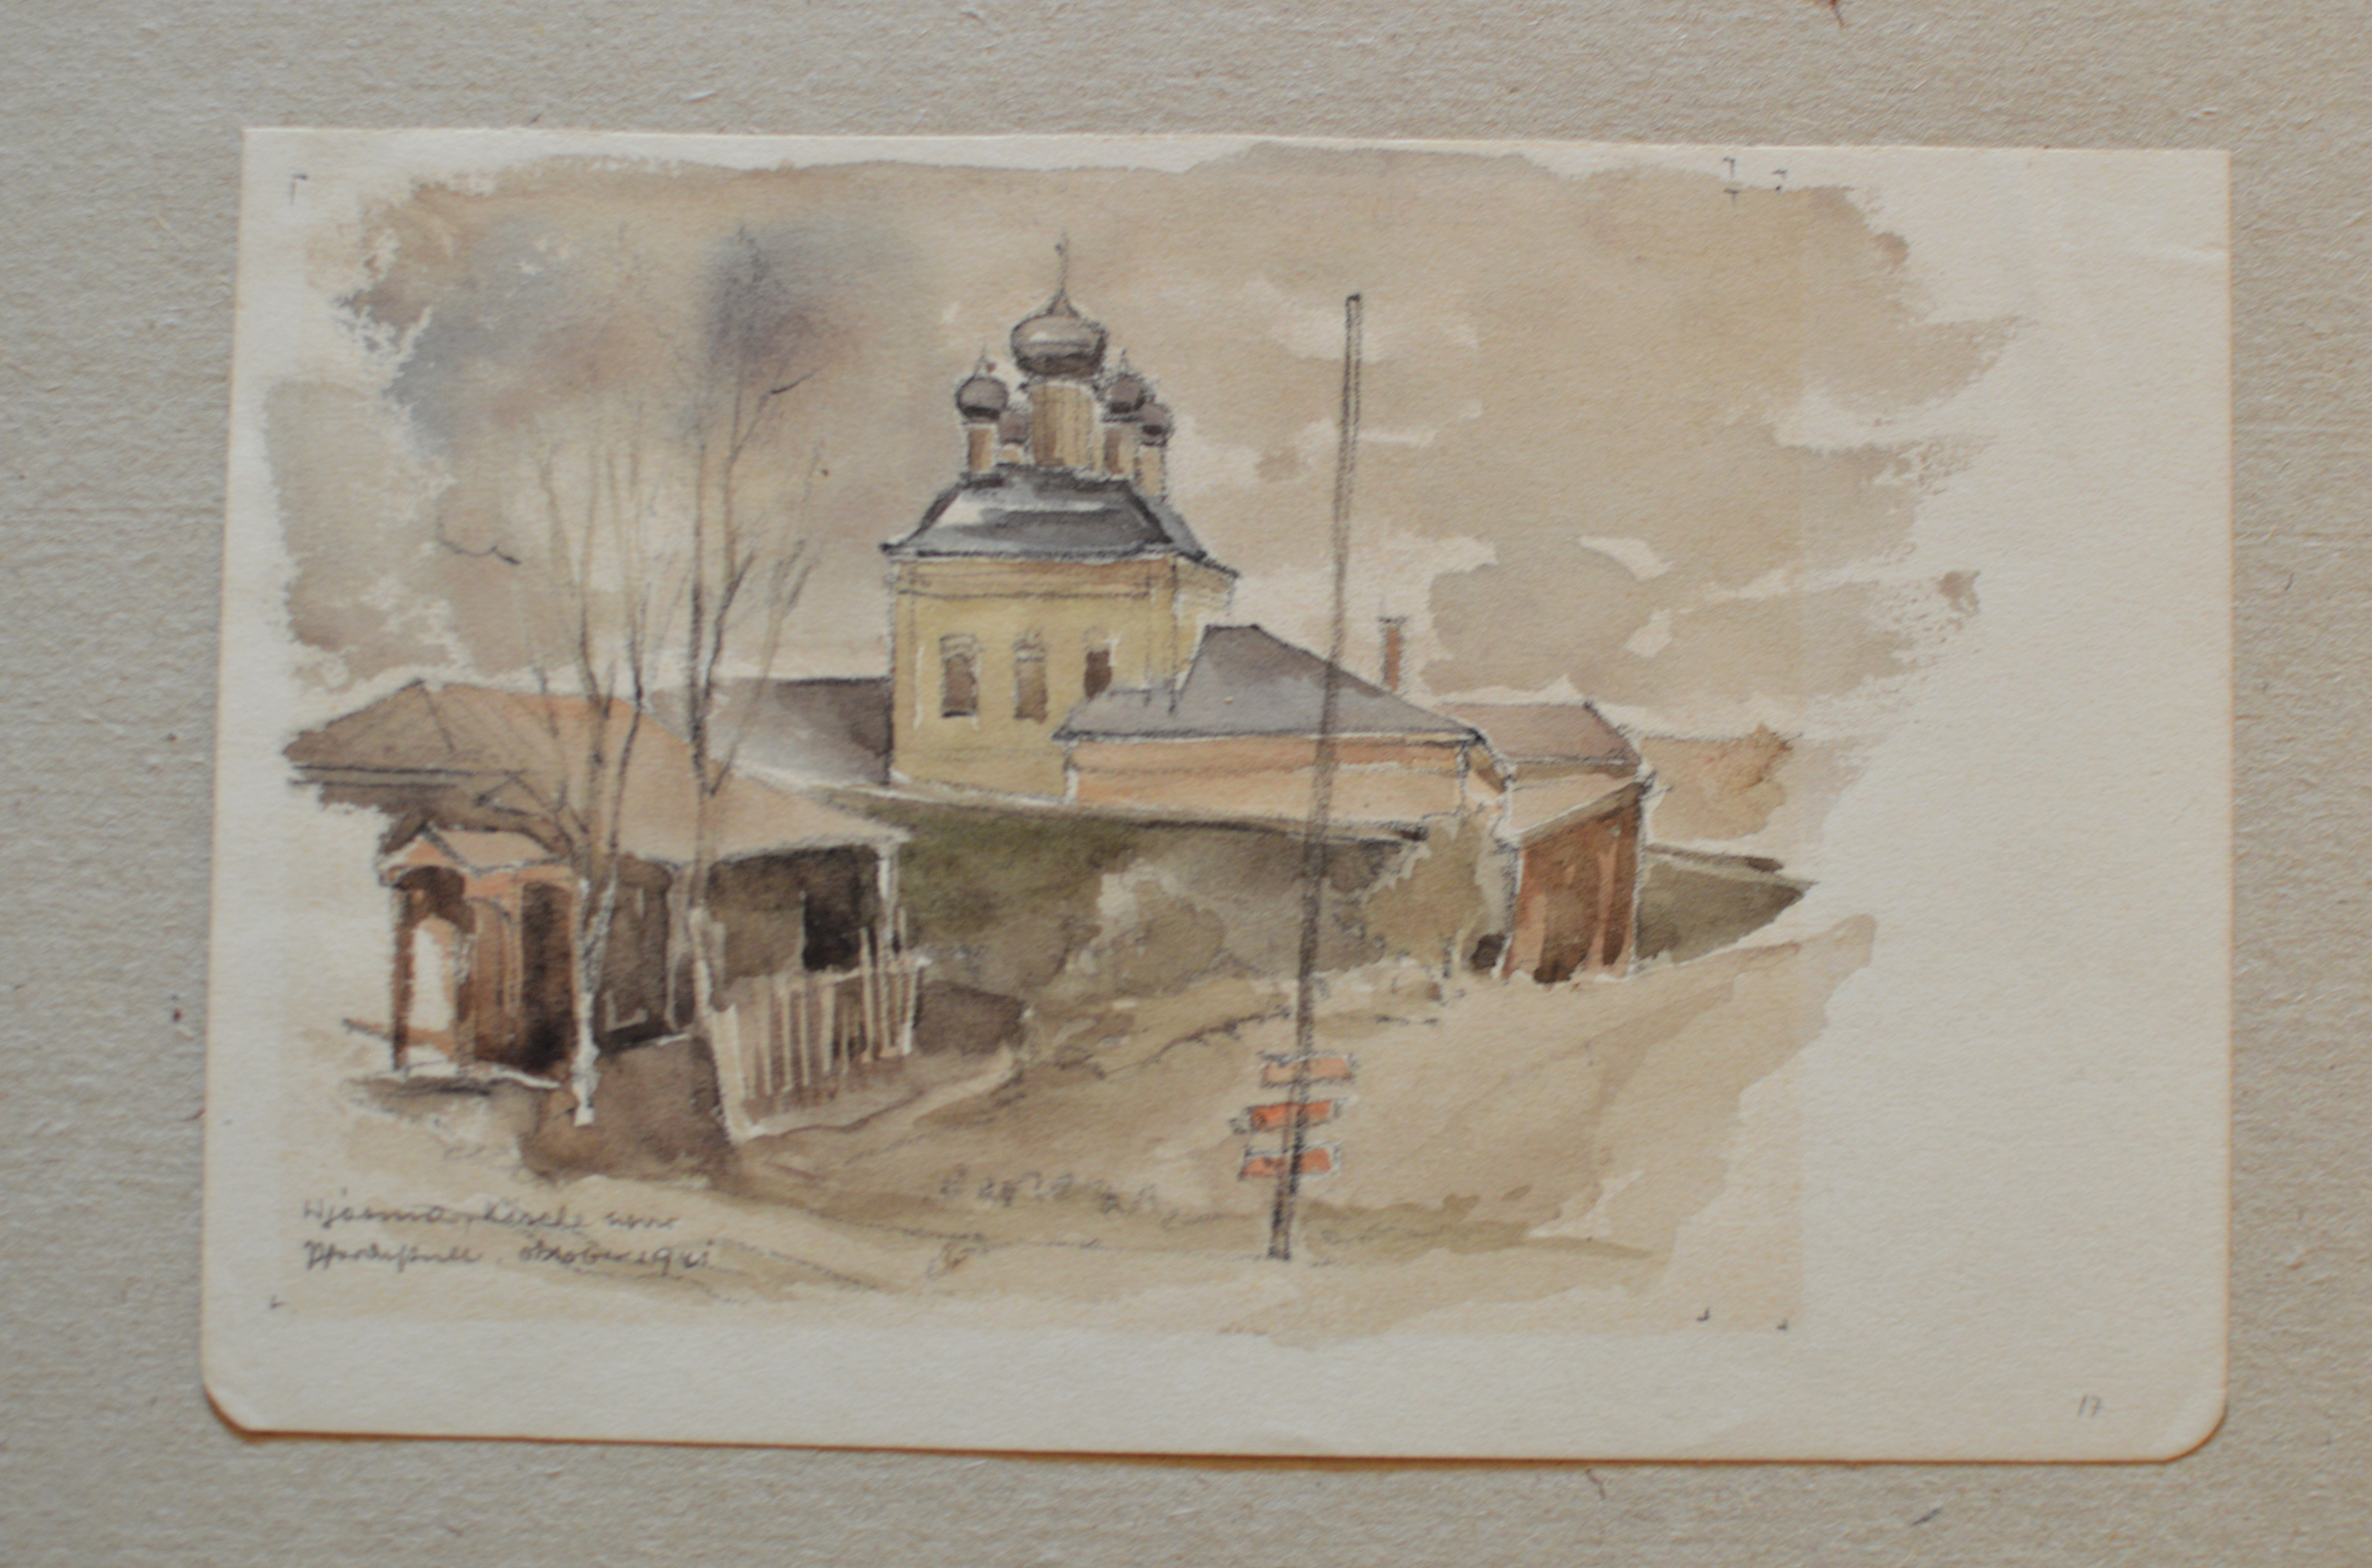 Josef Lidl - War pictures, Church, Hjasma, Ot. 41